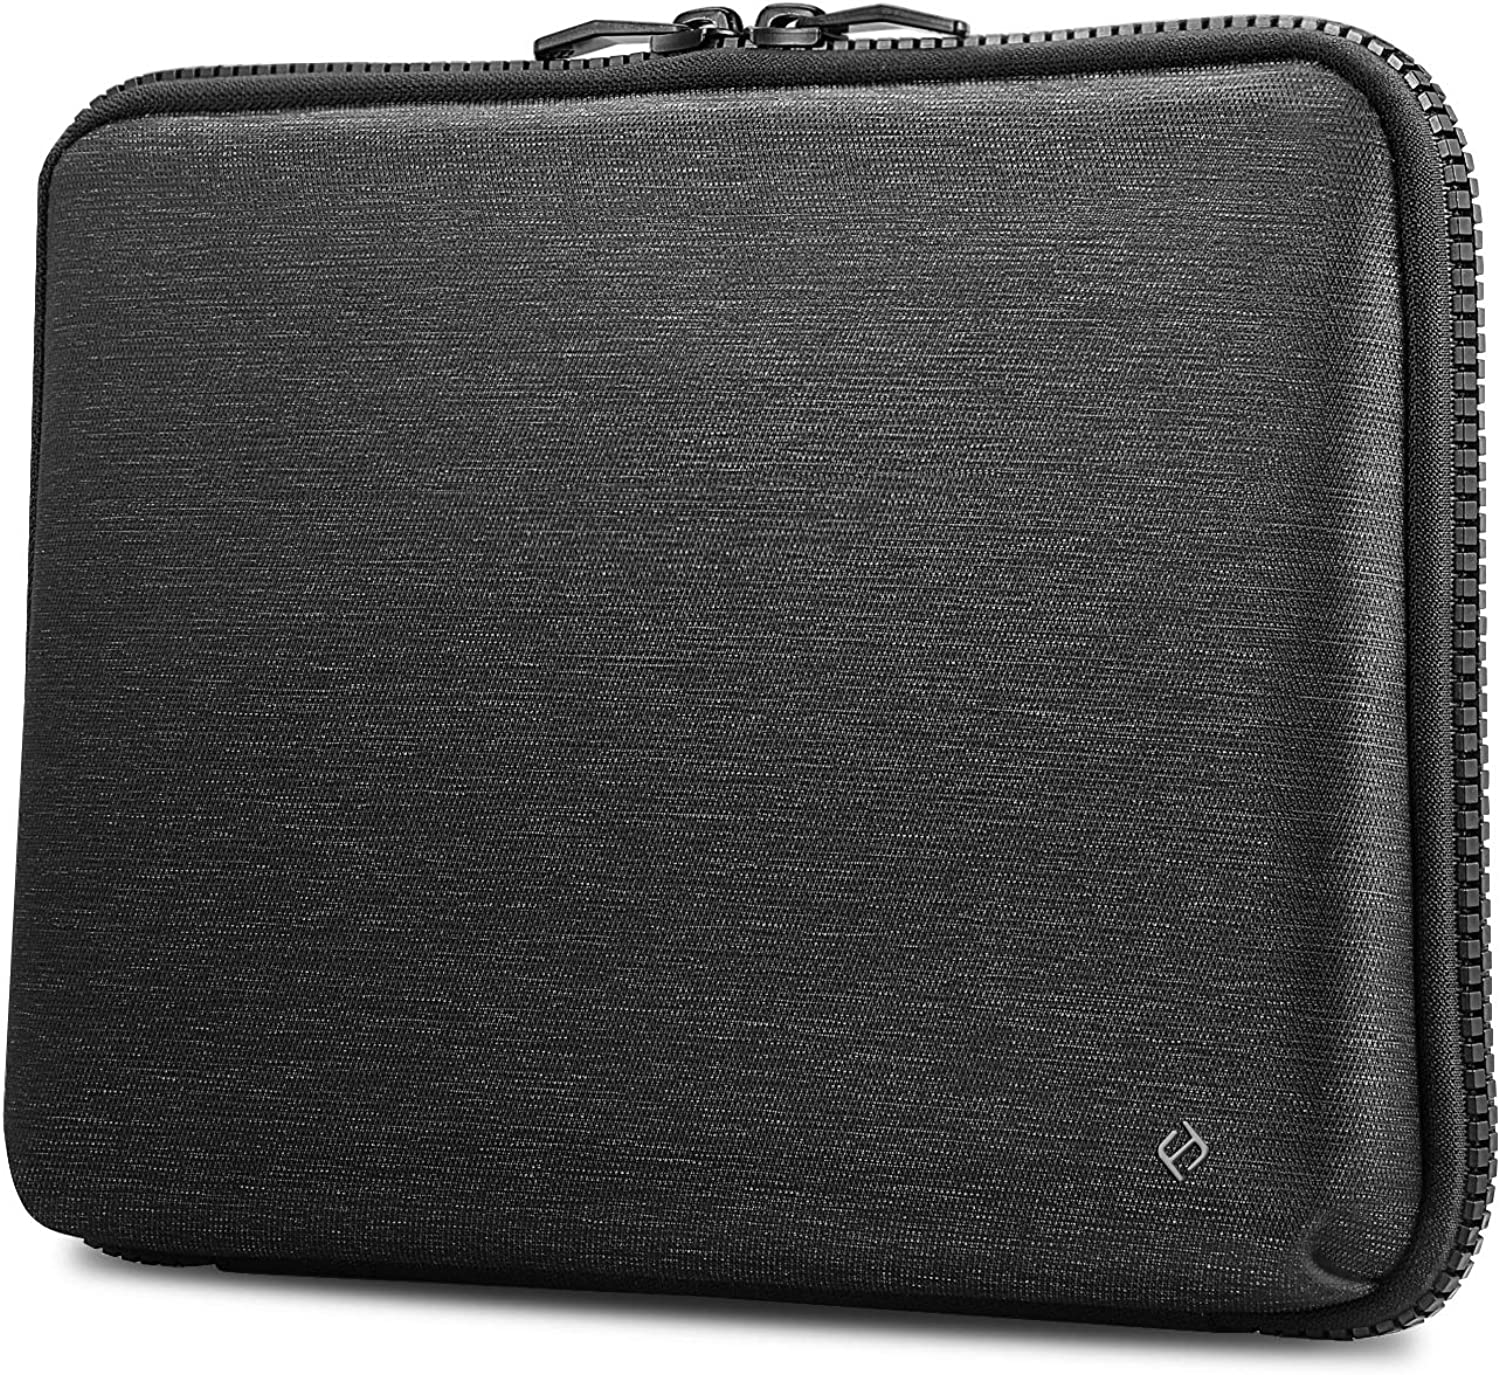 FINPAC 11 Inch Portfolio Sale Over item handling ☆ special price Tablet Sleeve iPad 10.9 Air 4 for